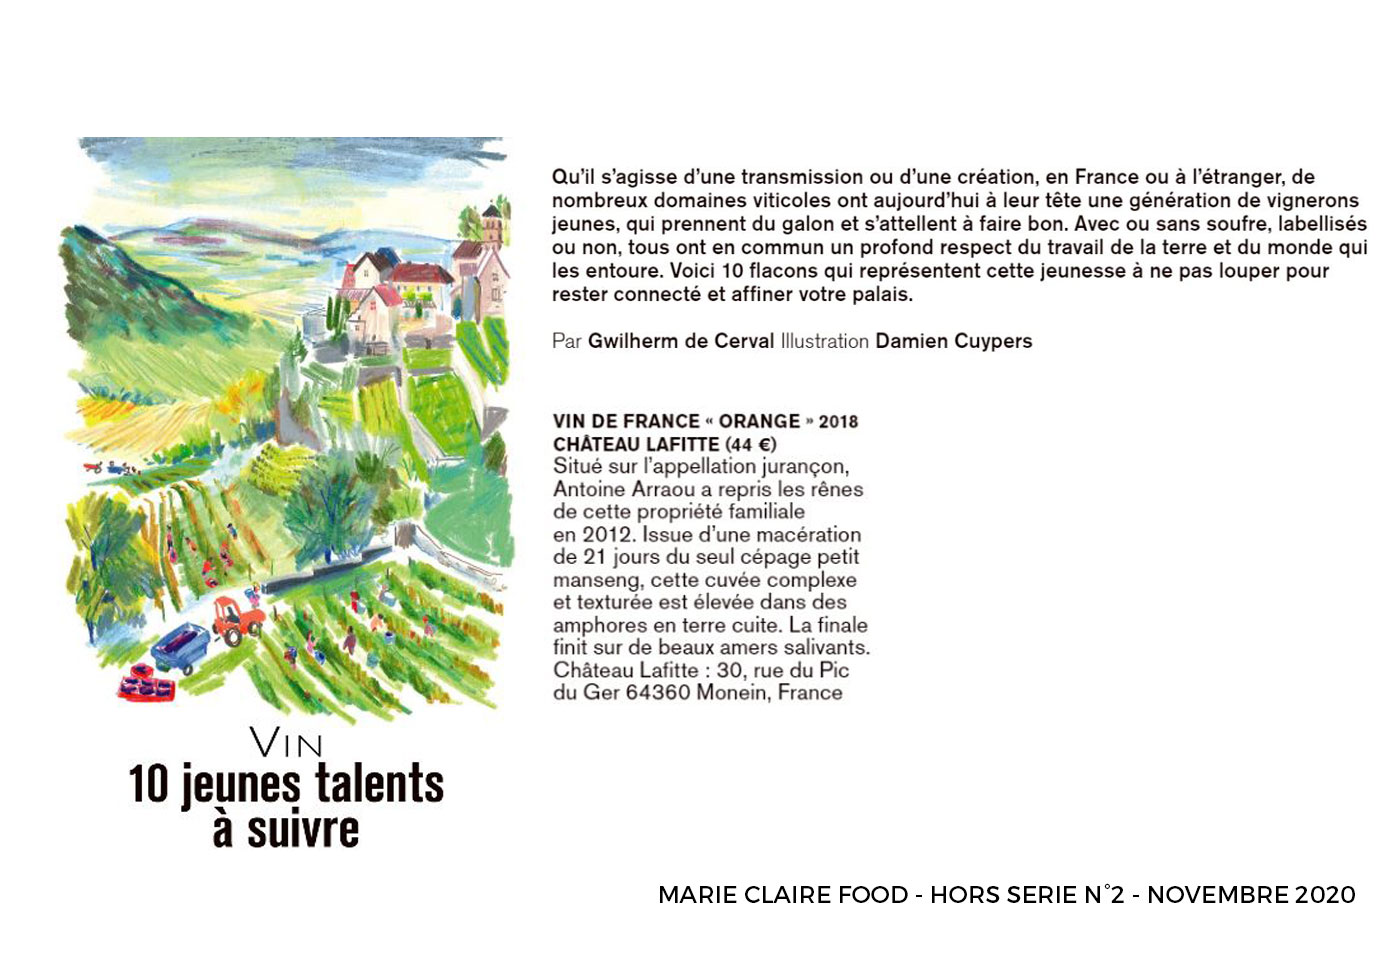 Marie Claire Food Chateau Lafitte